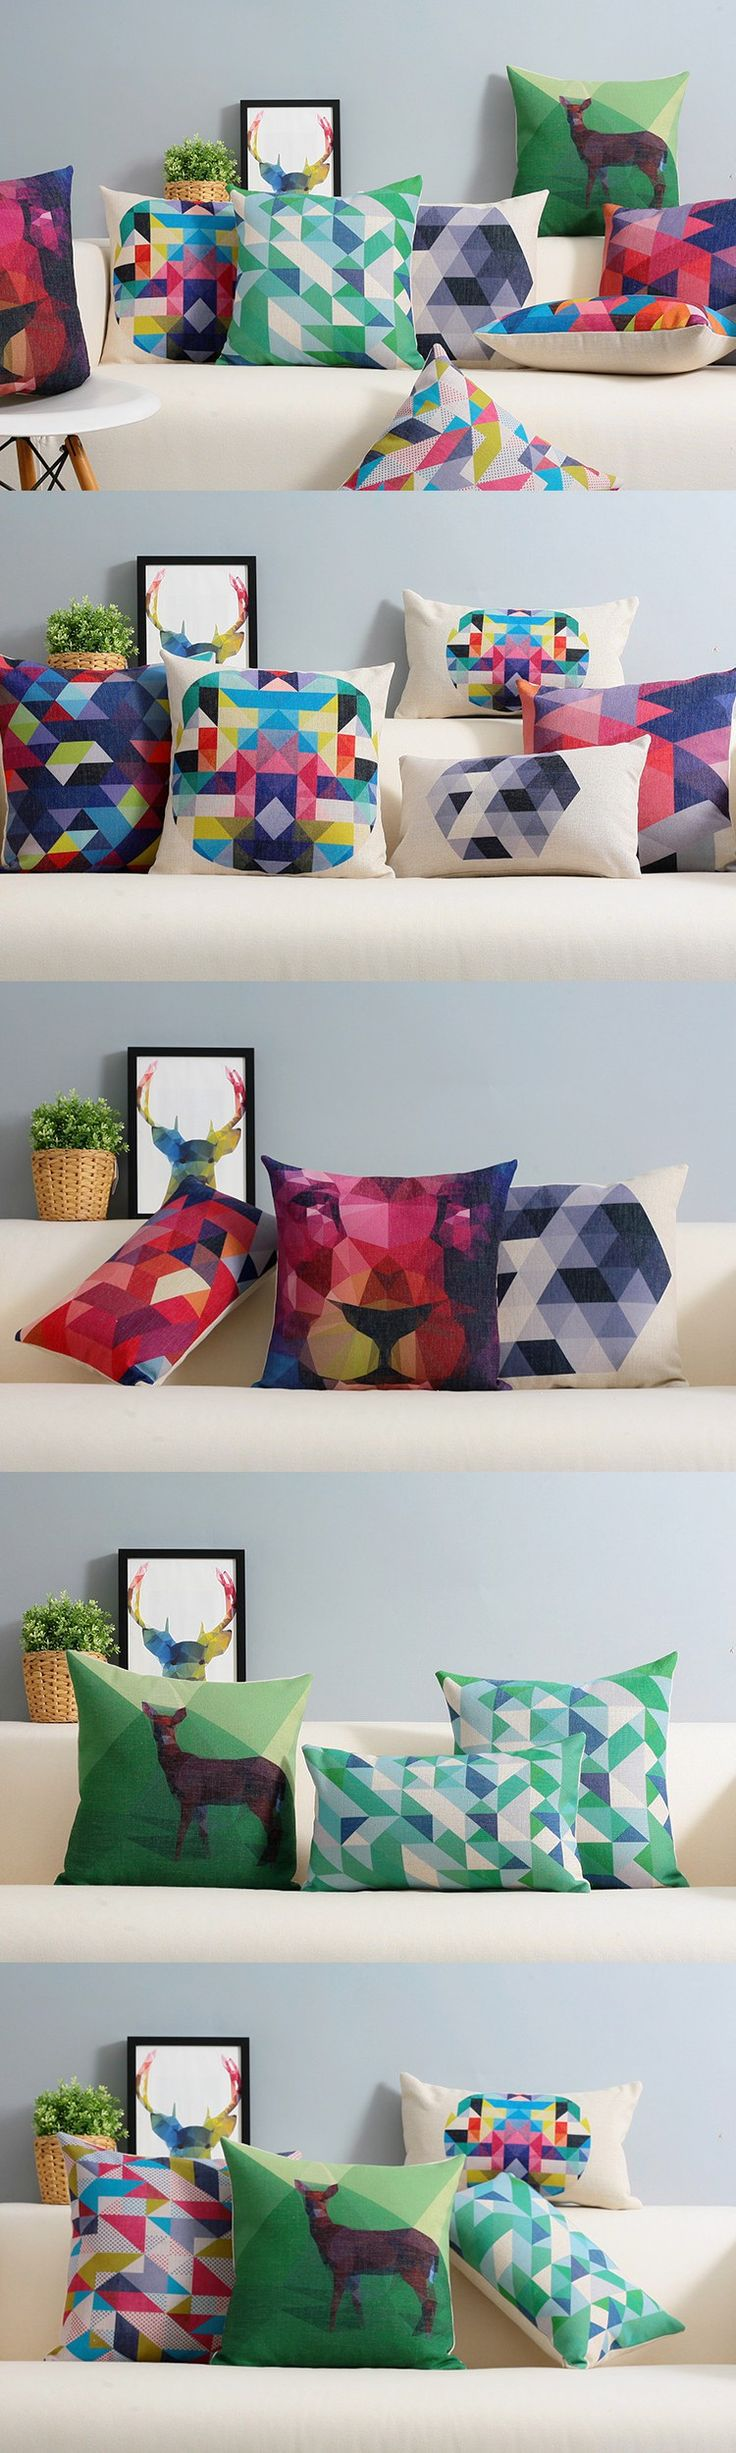 Color abstract Decorative Cushion Covers geometric minimalist Cushions Home Decor Nordic style colorful Cushions For Sofas $14.99